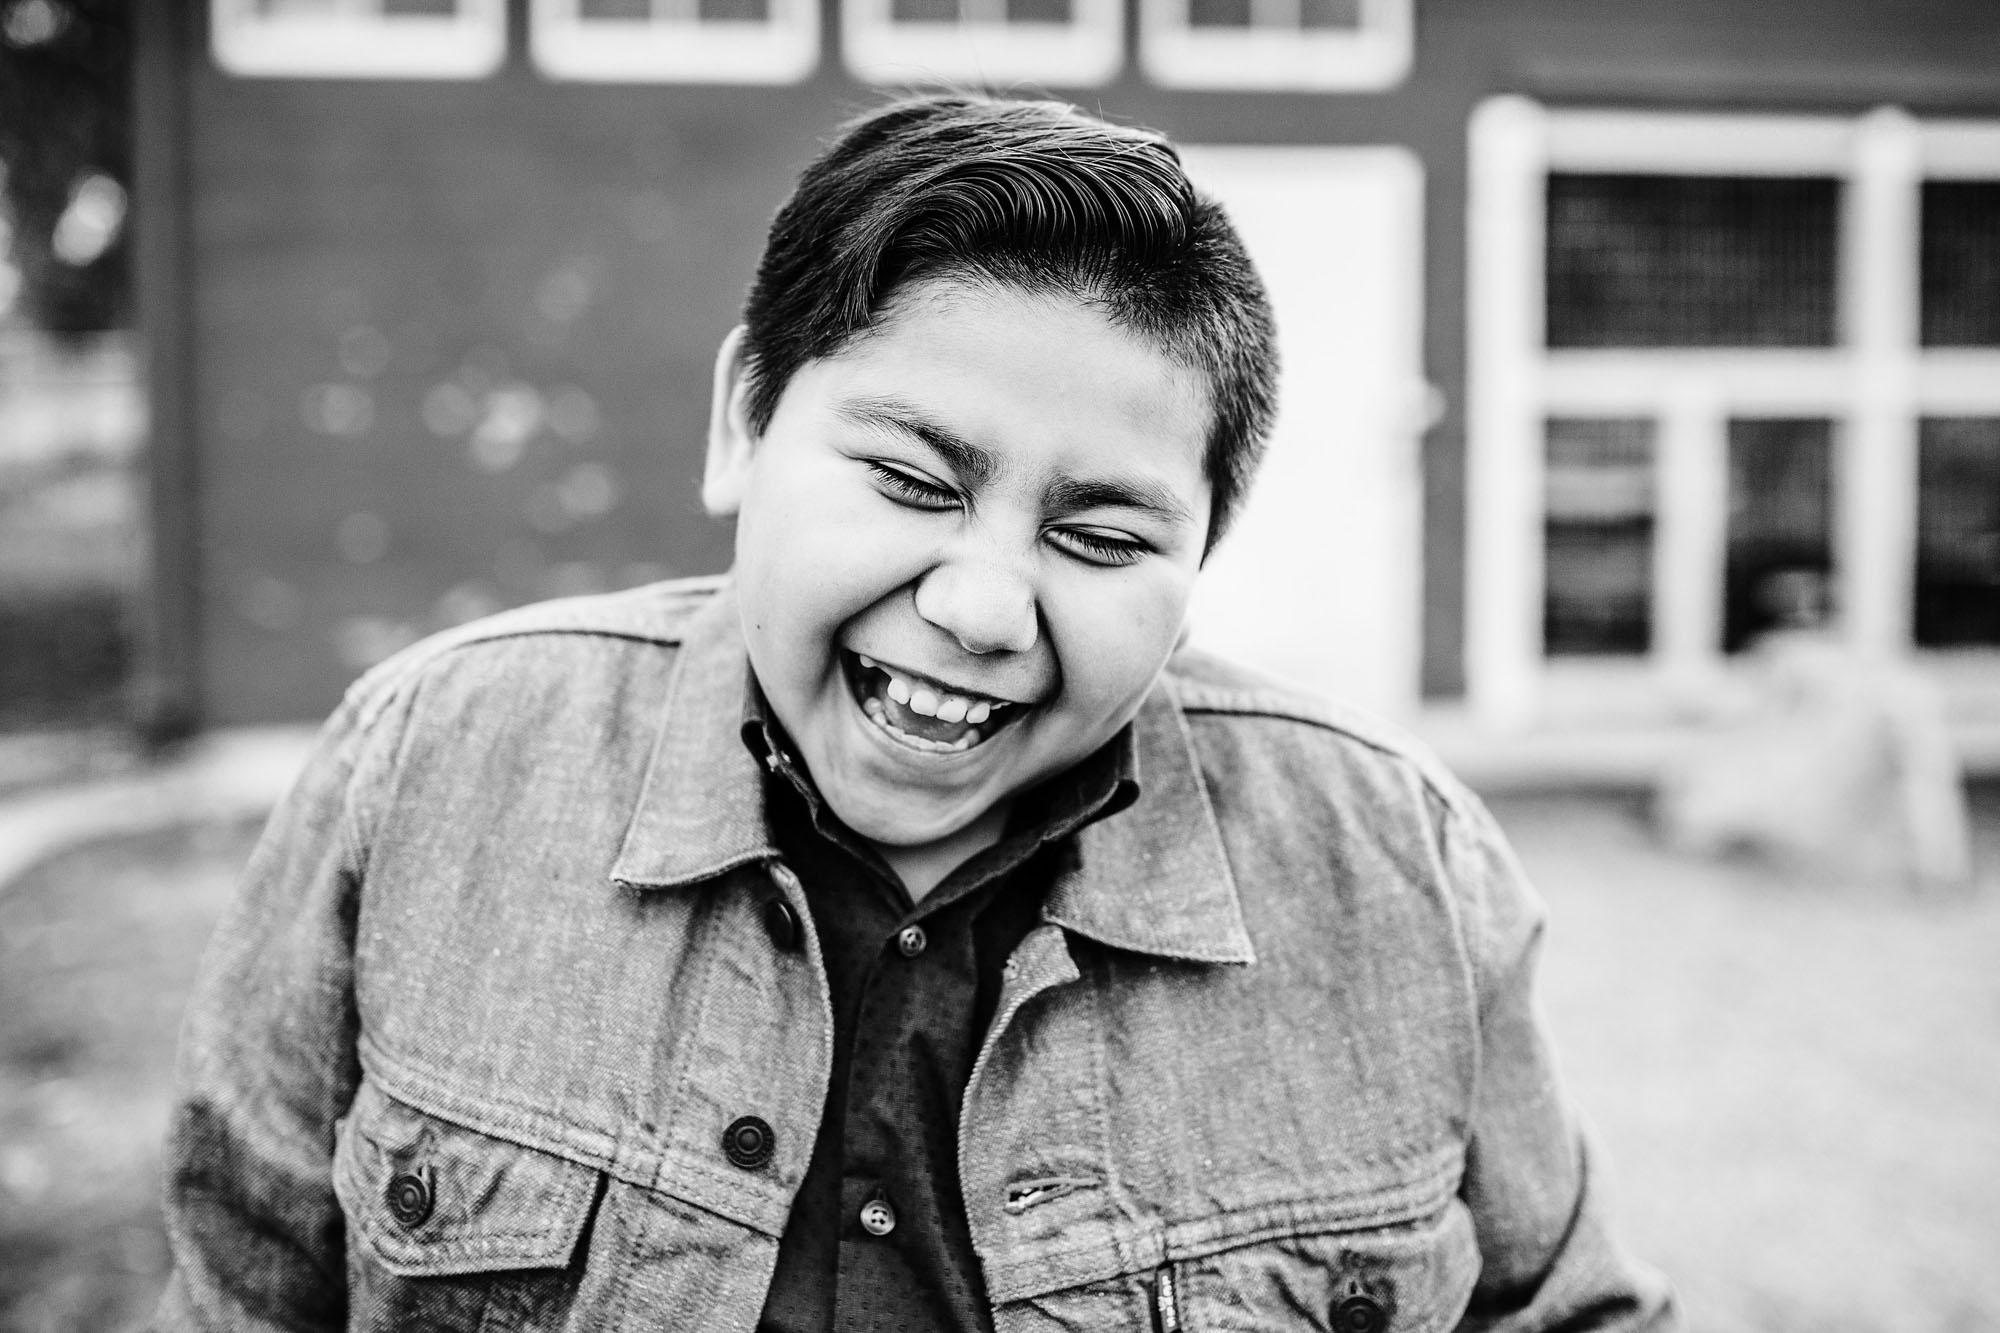 A boy laughs as his portrait is taken in Roseville, California by Amy Wright Photo.